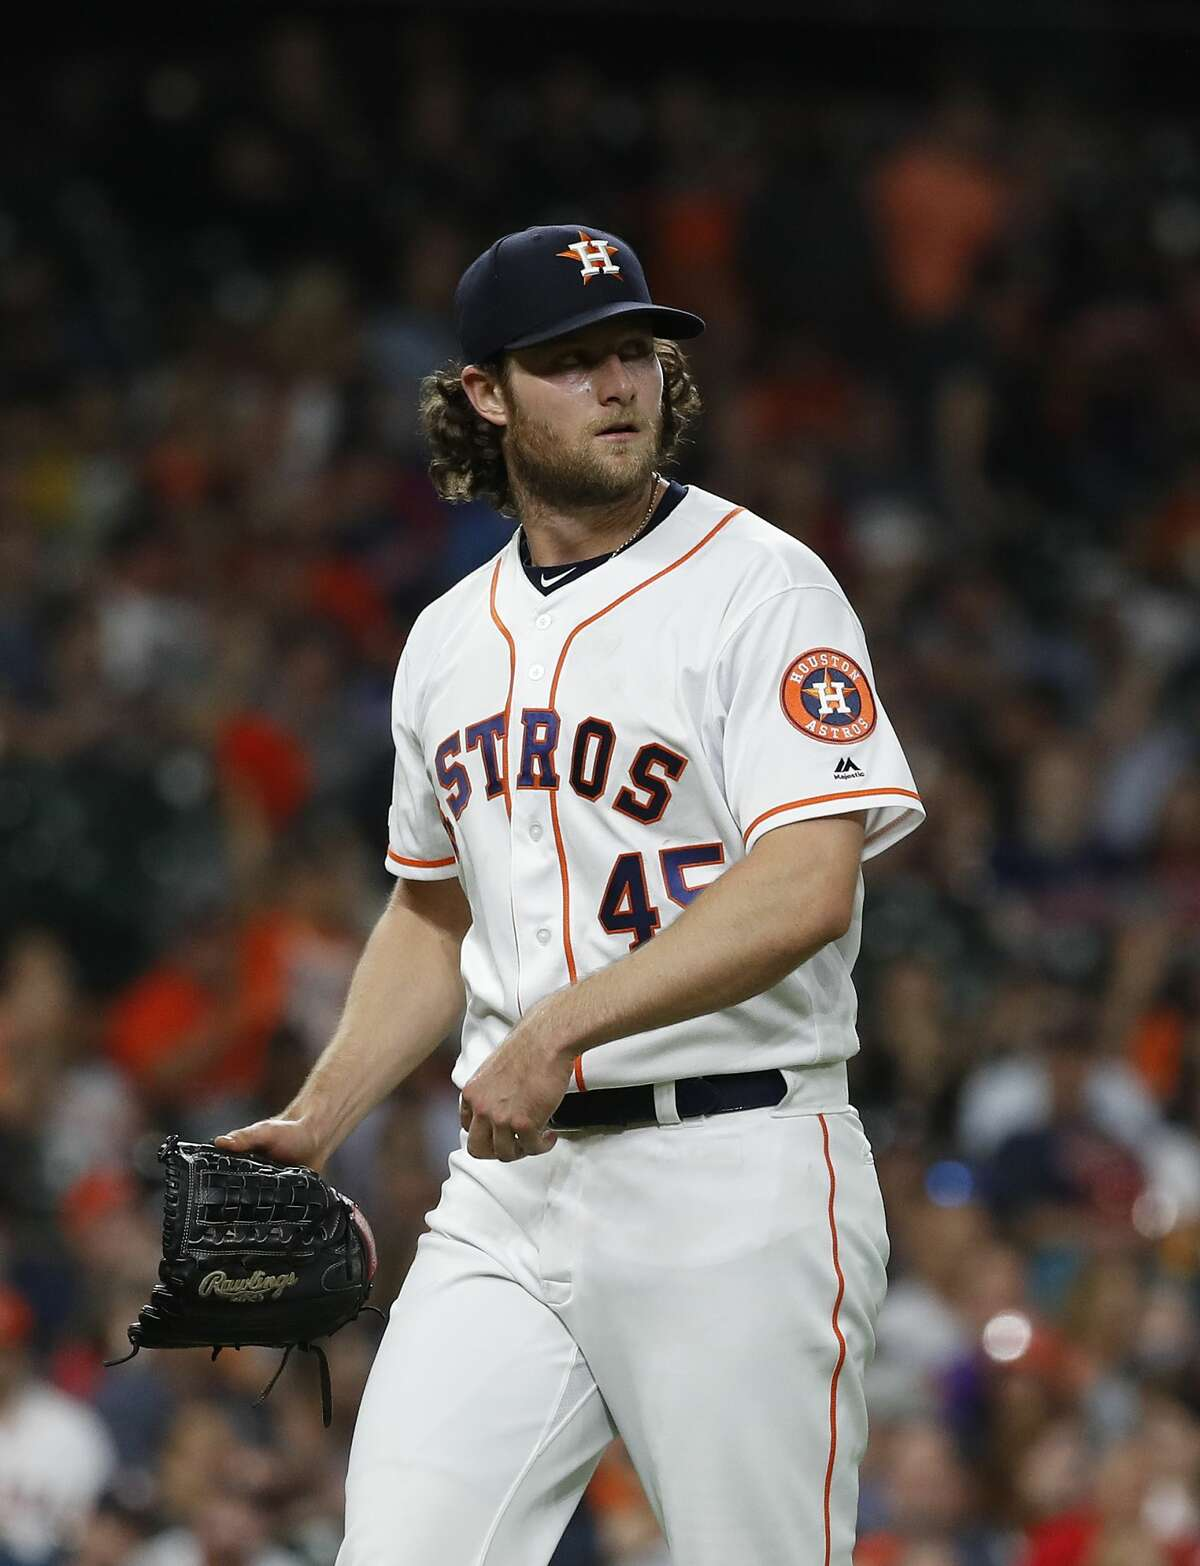 Houston Astros starting pitcher Gerrit Cole (45) reacts as he walked back to the dugout after the seventh inning of an MLB baseball game at Minute Maid Park, in Houston, Thursday, April 25, 2019.